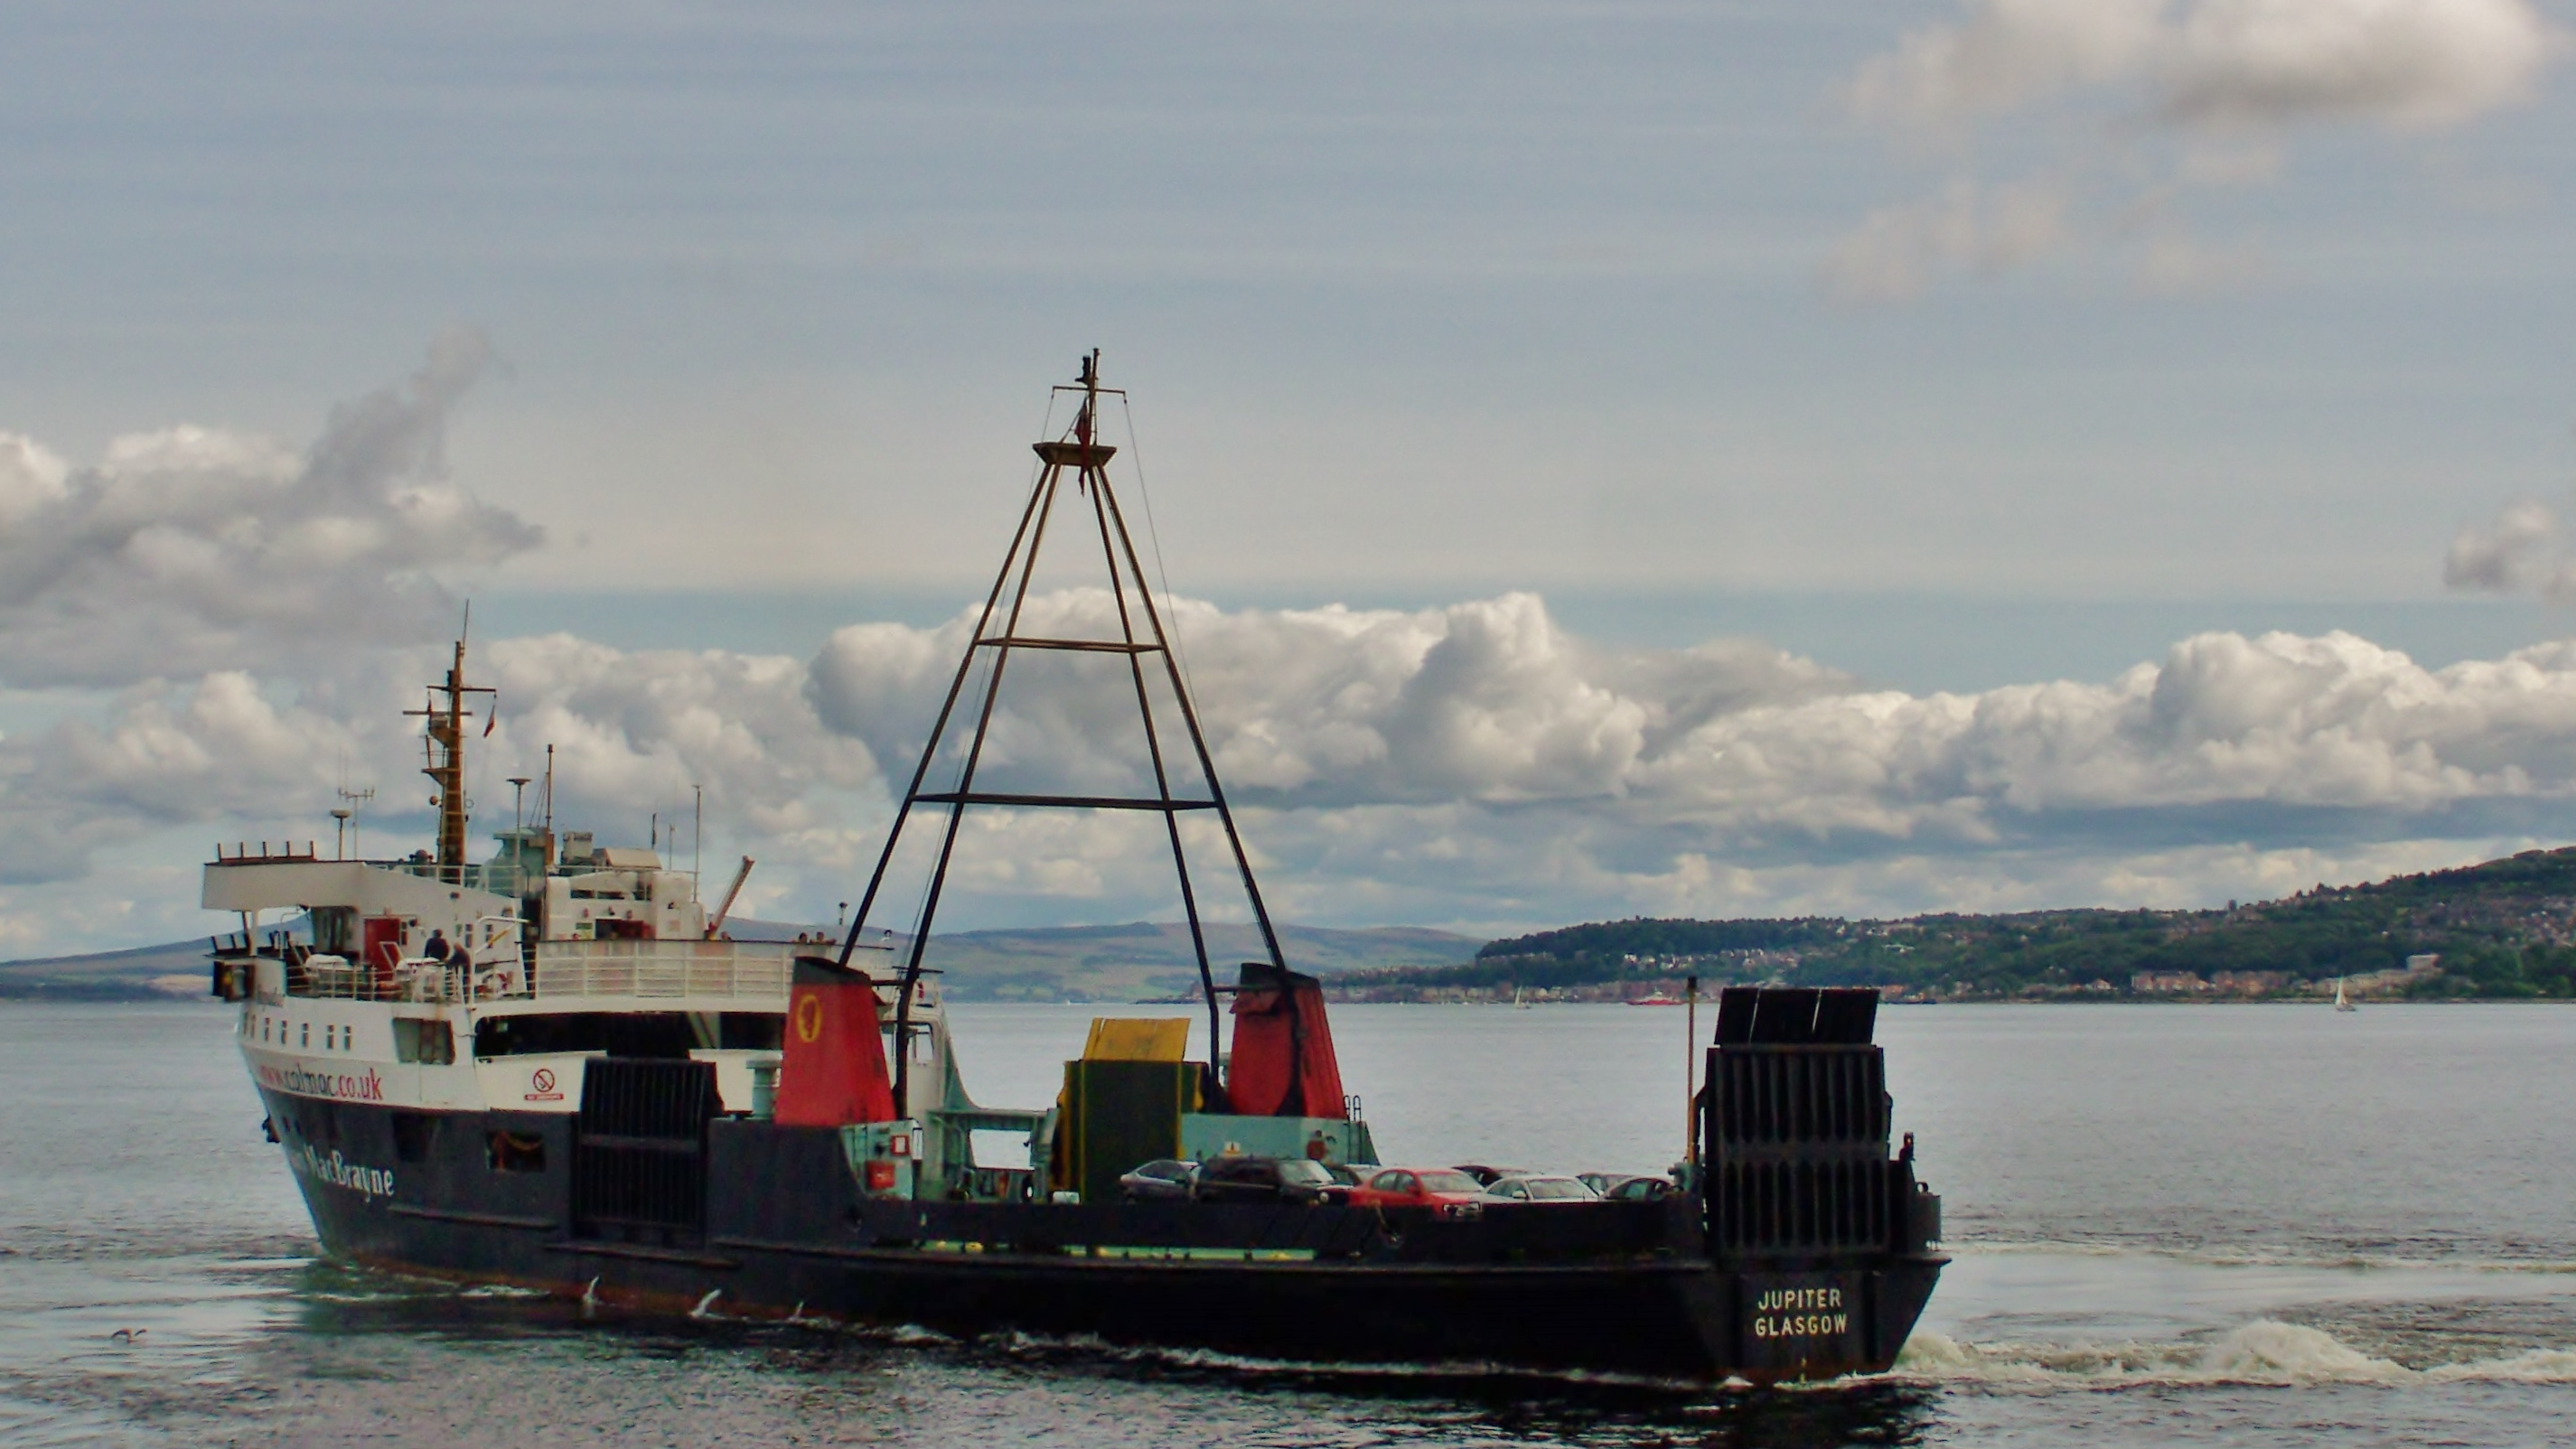 Jupiter off Dunoon (Ships of CalMac)